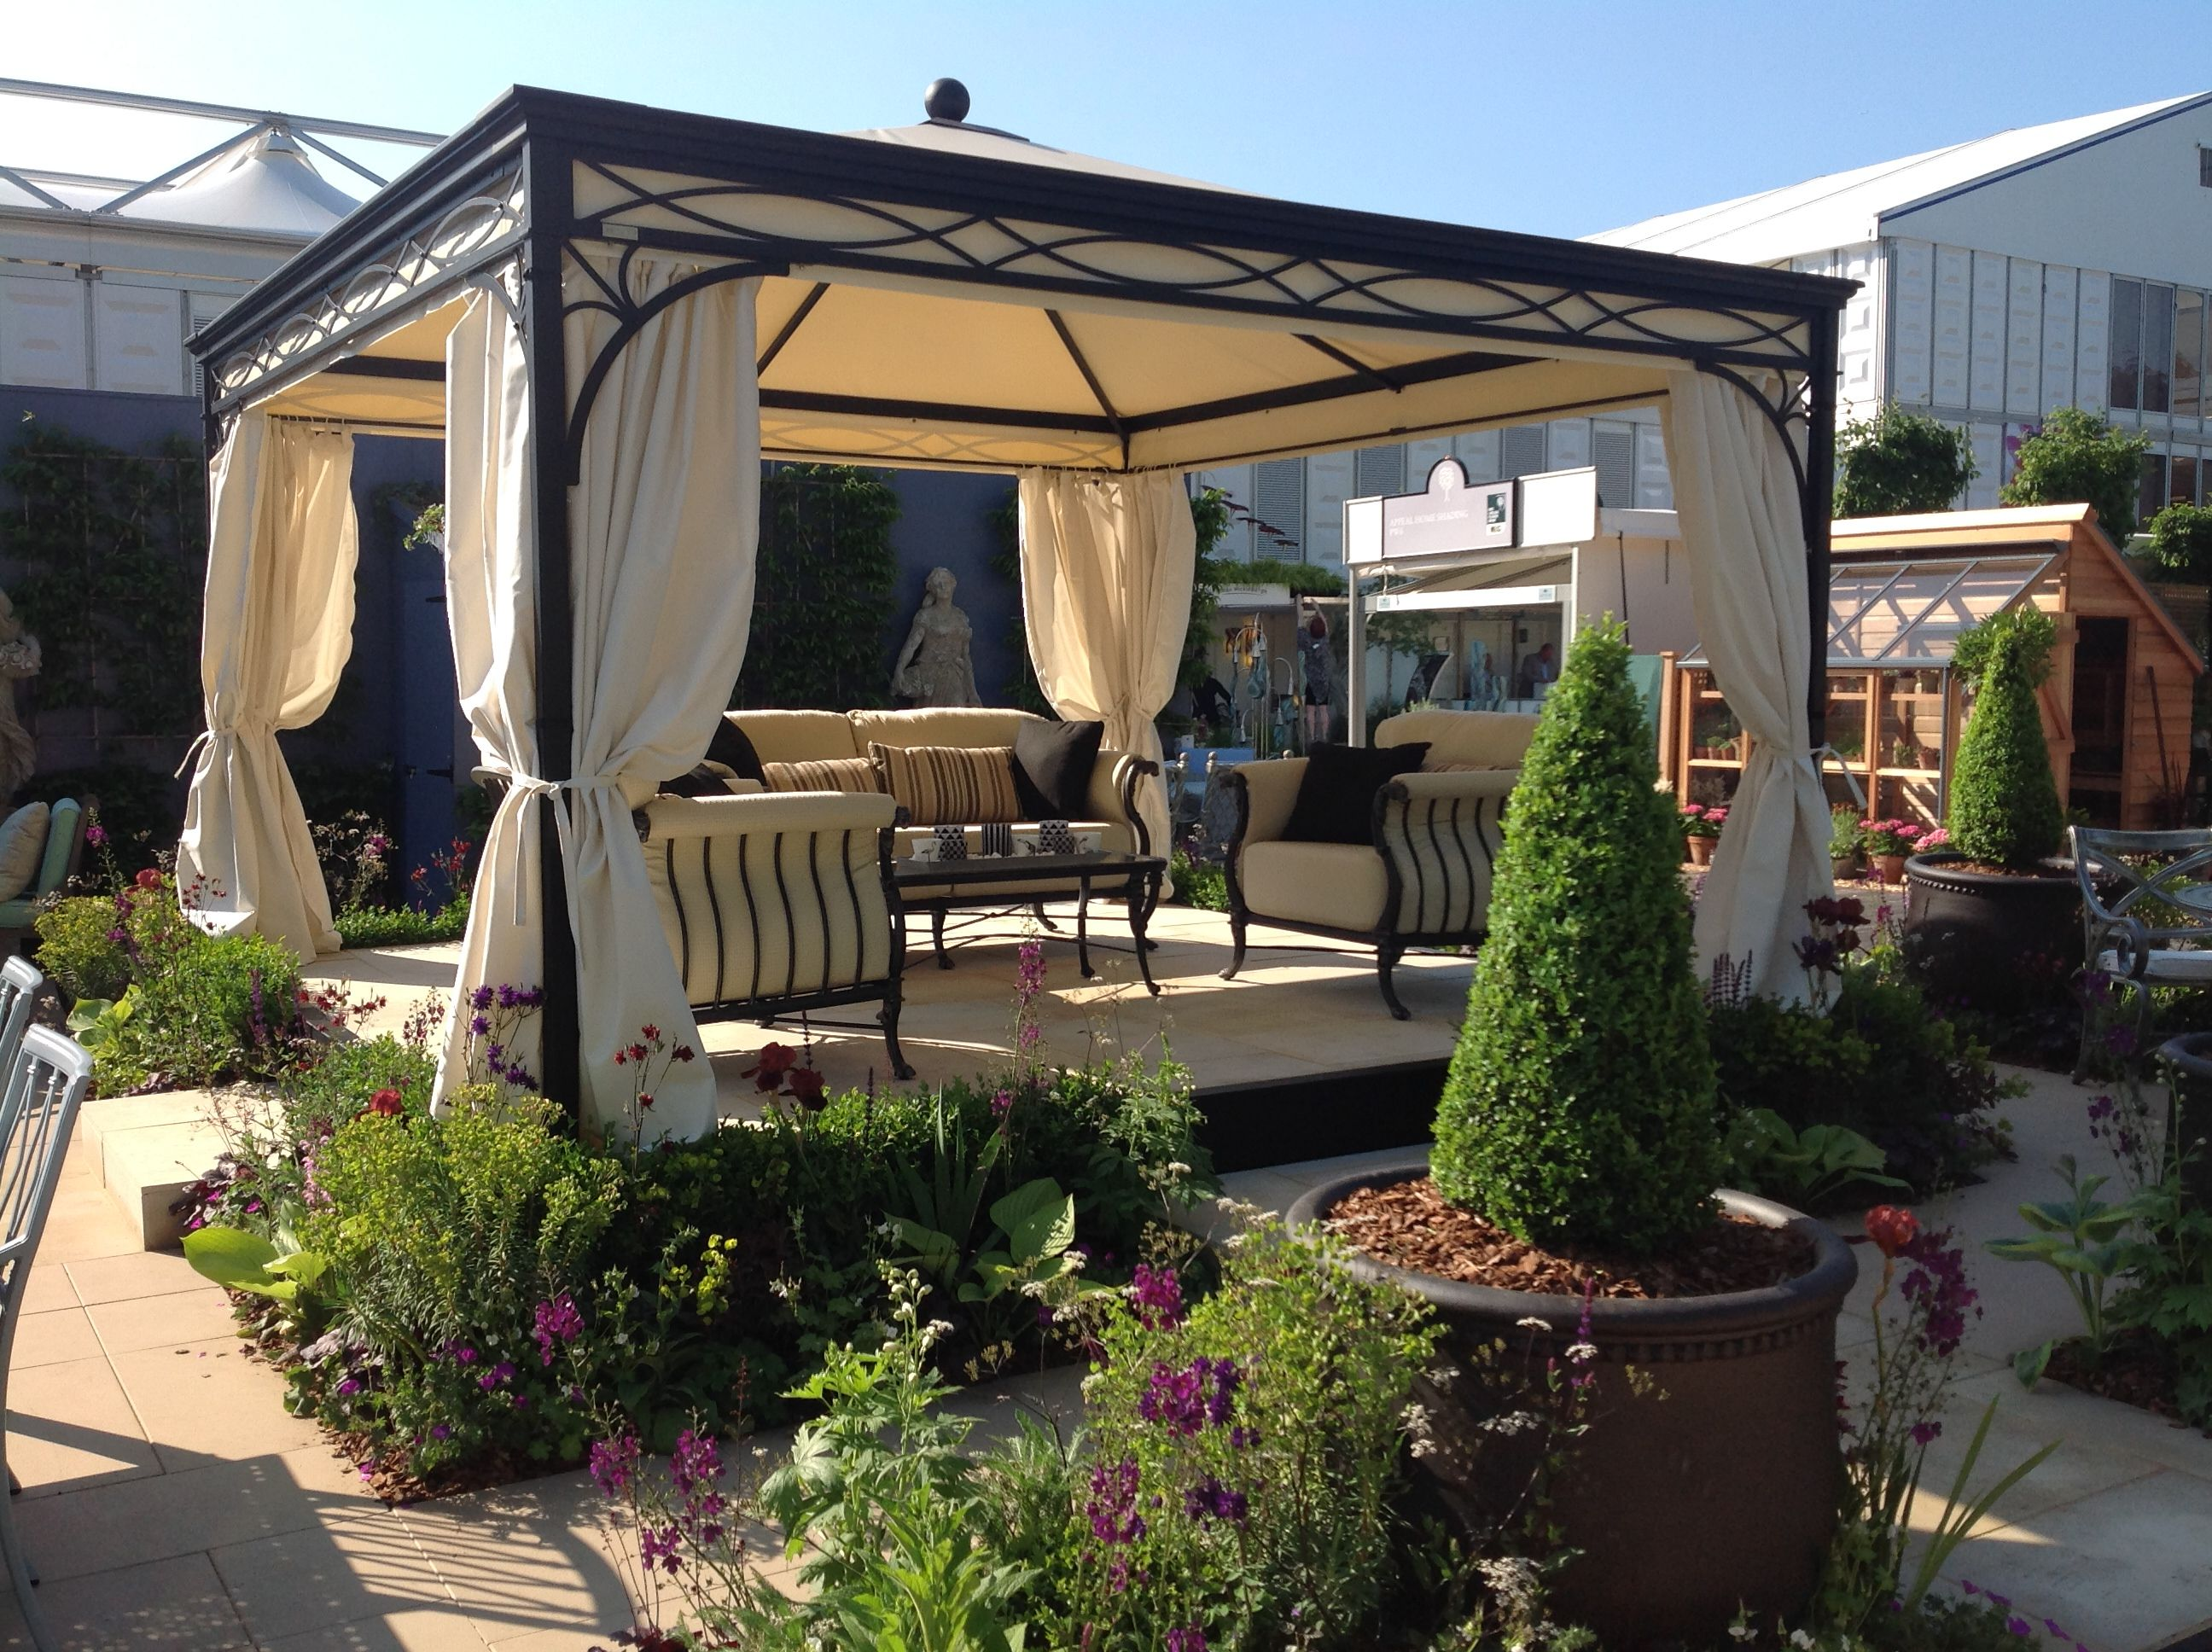 Oxley S Furniture And Unosider Gazebo Novecento At Chelsea